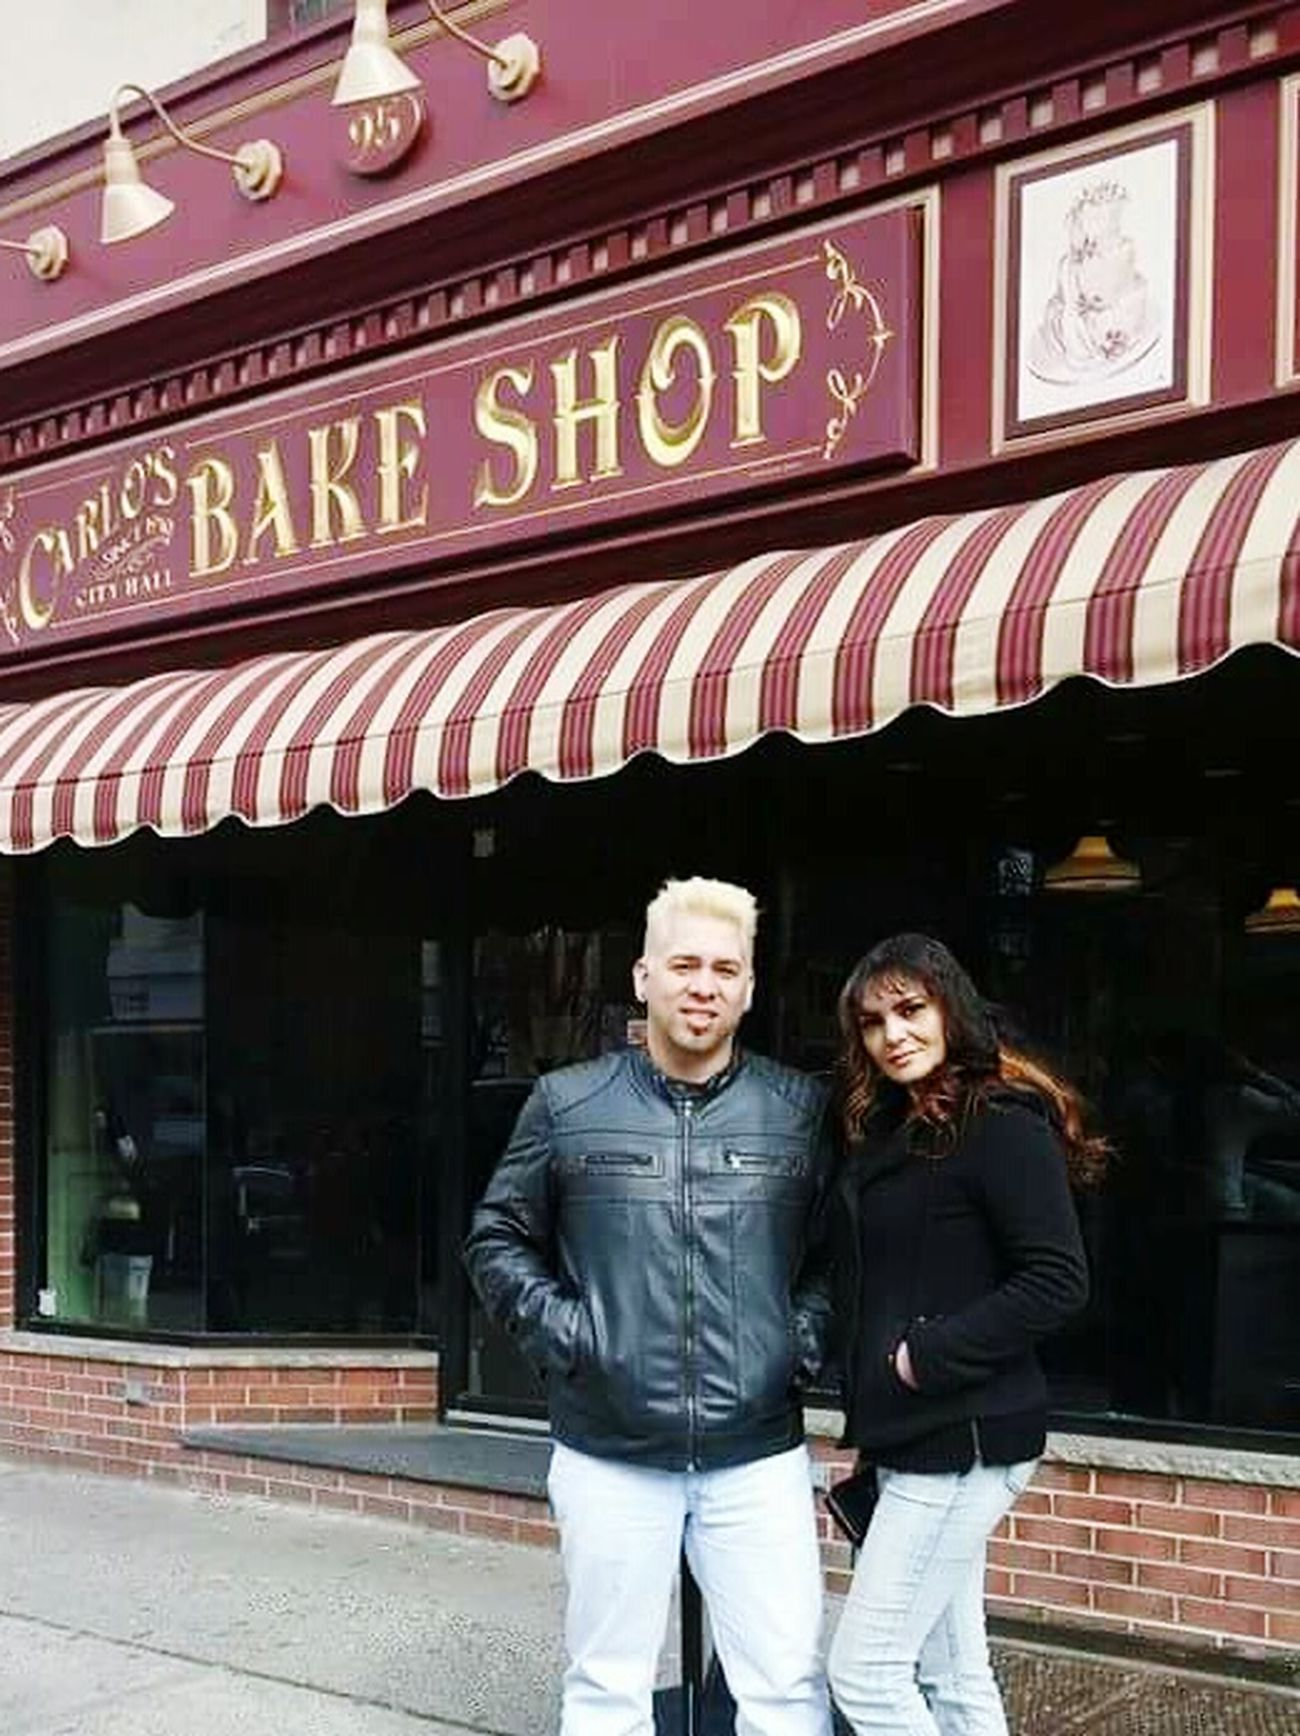 Self Portrait Around The World A trip with my friend to taste the awesome cakes by the Cake Boss Buddy and his staff at Carlos Bake Shop in Hoboke. N.J. Photo Taking Photos